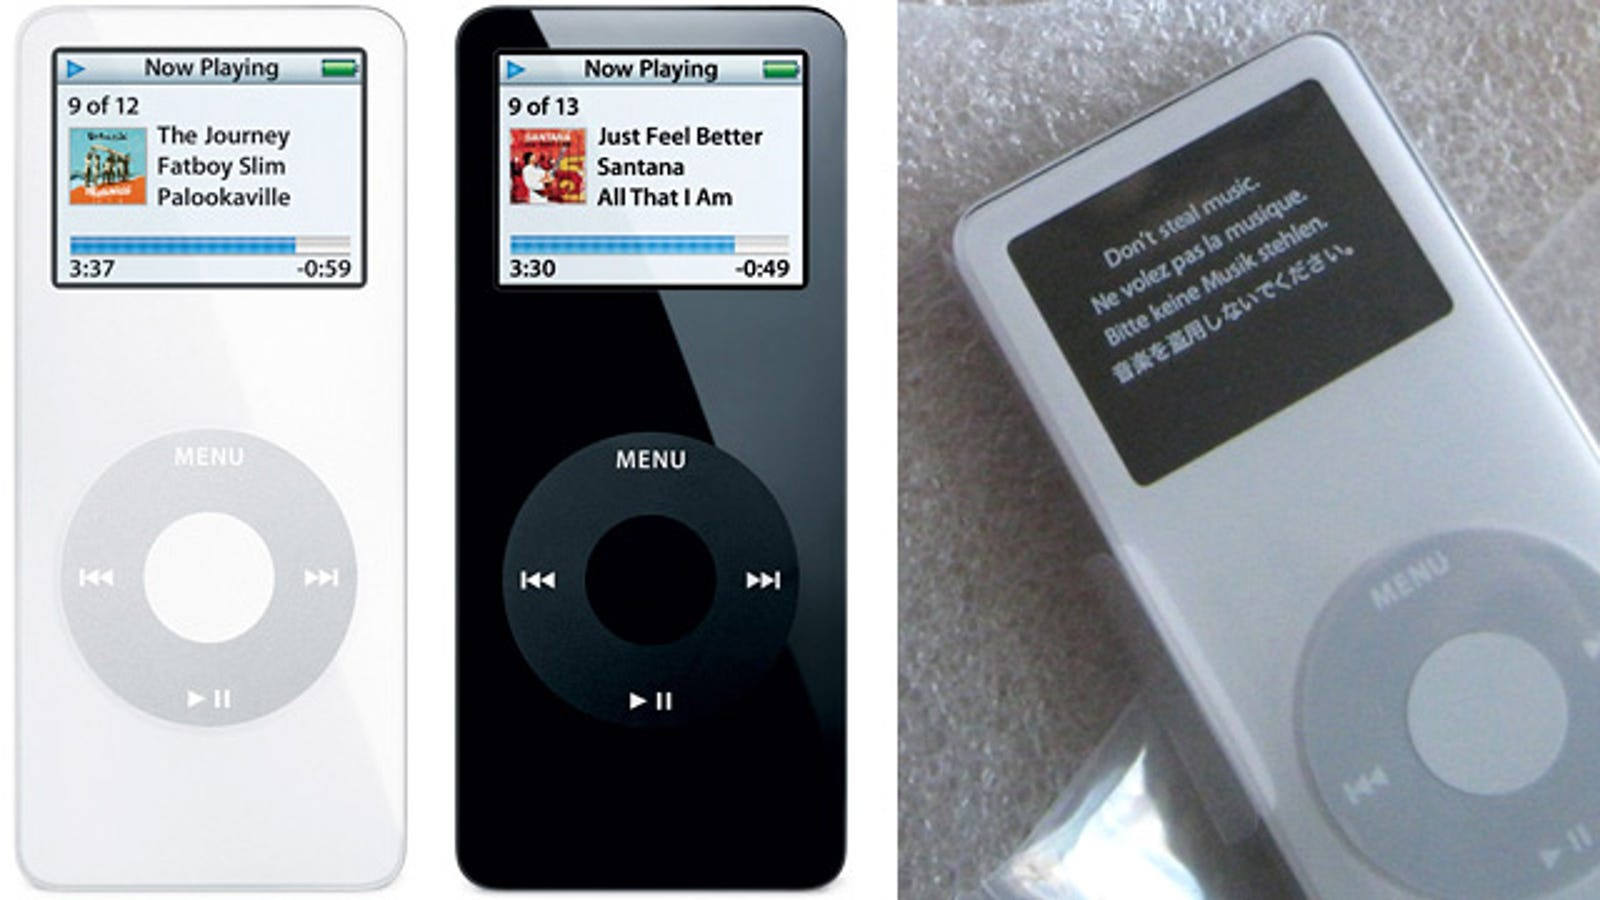 Apple's Recalled First Gen iPod Nanos Are Being Replaced With the Same Model